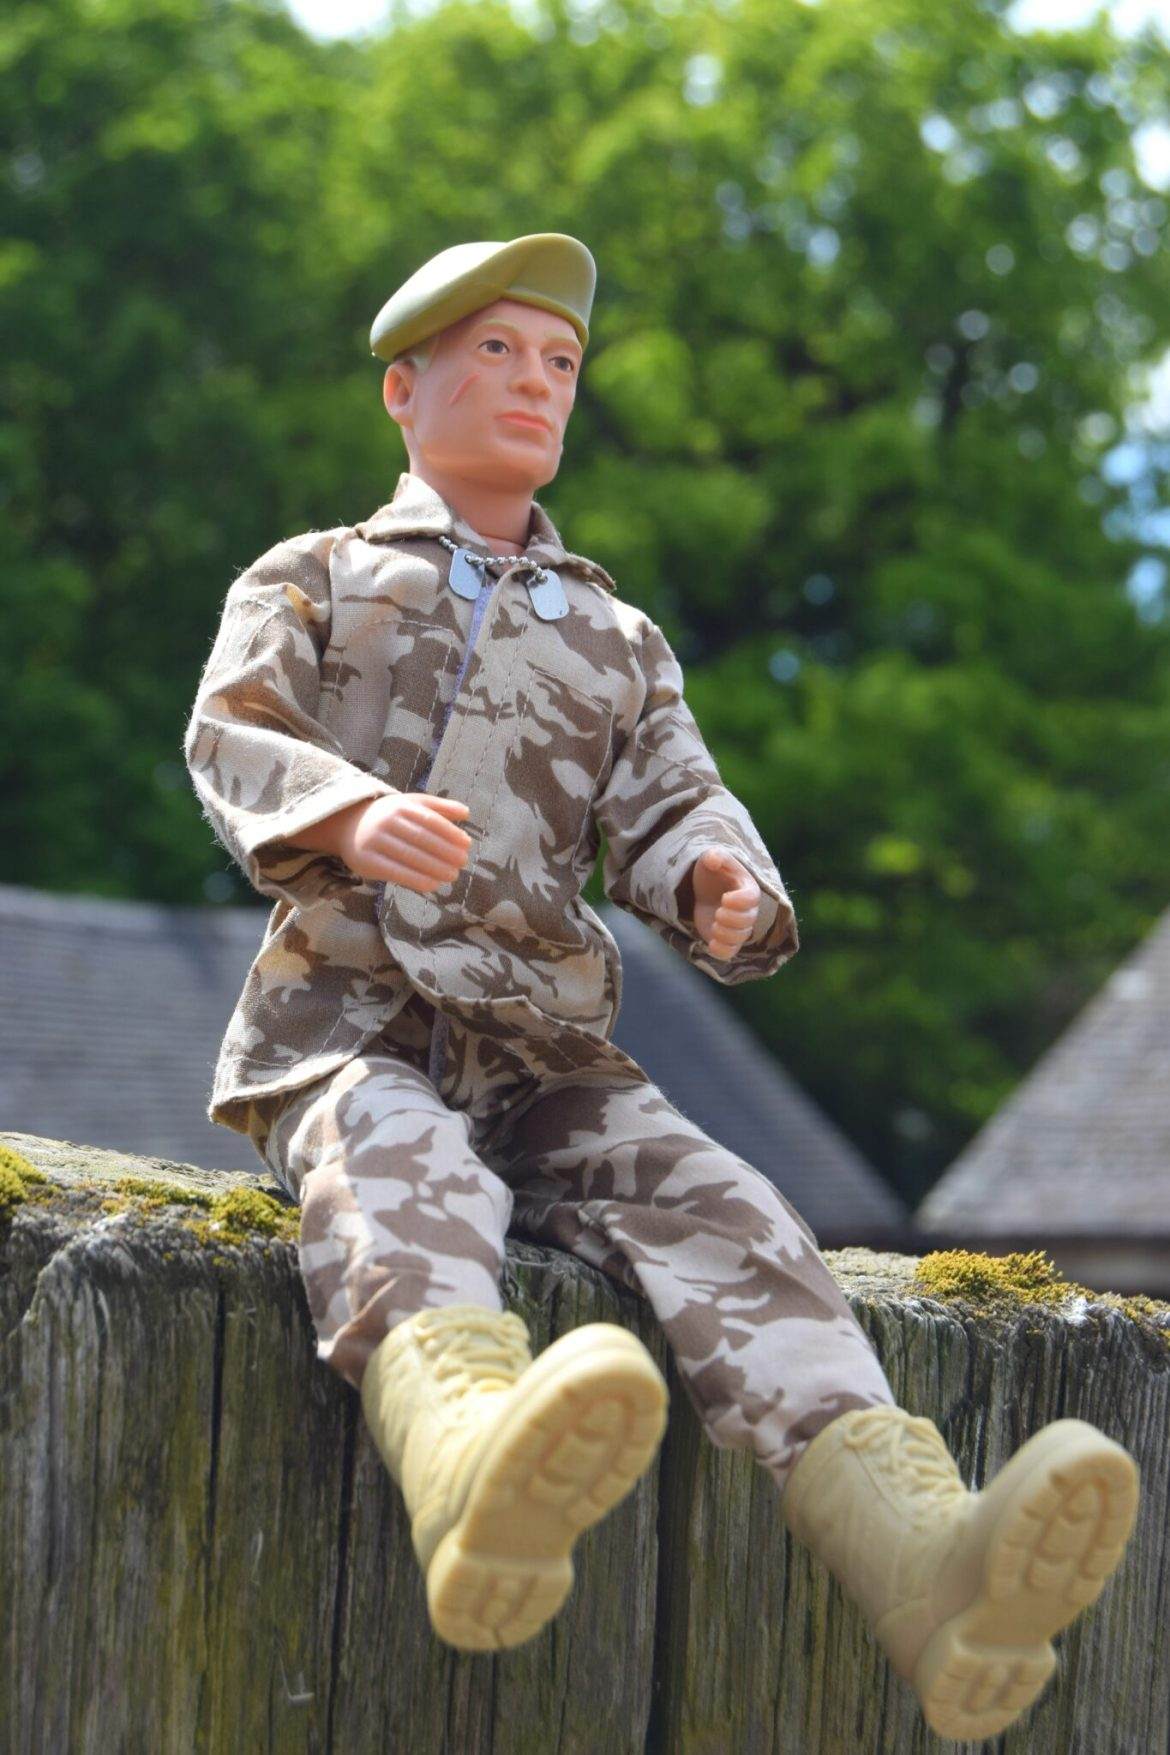 Action Man soldier classic Action Man toys